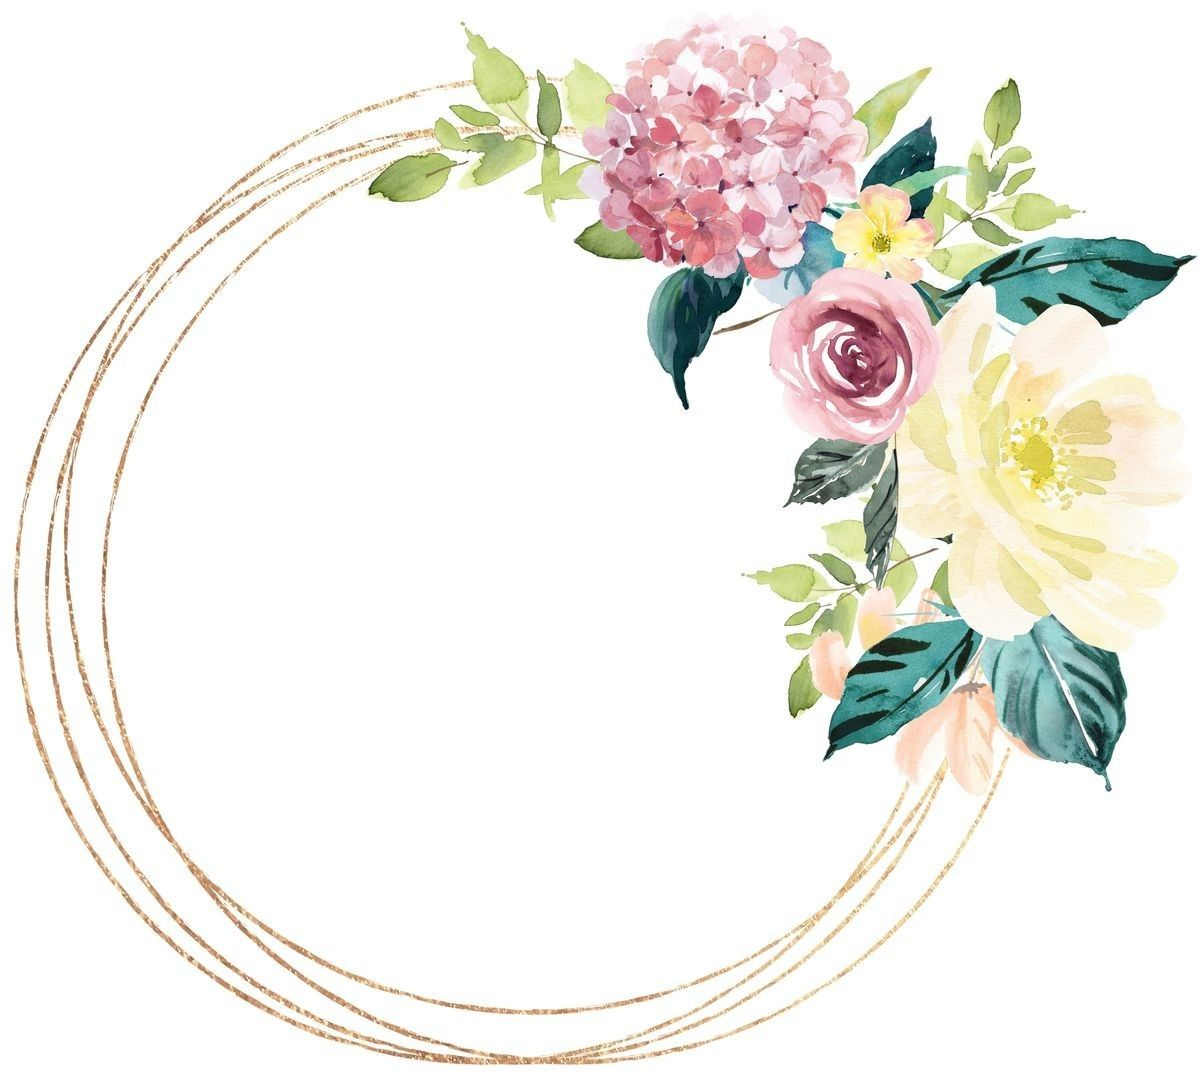 Pin By Htoon On ثيمات كيوت Flower Frame Painting Wallpaper Wreath Watercolor